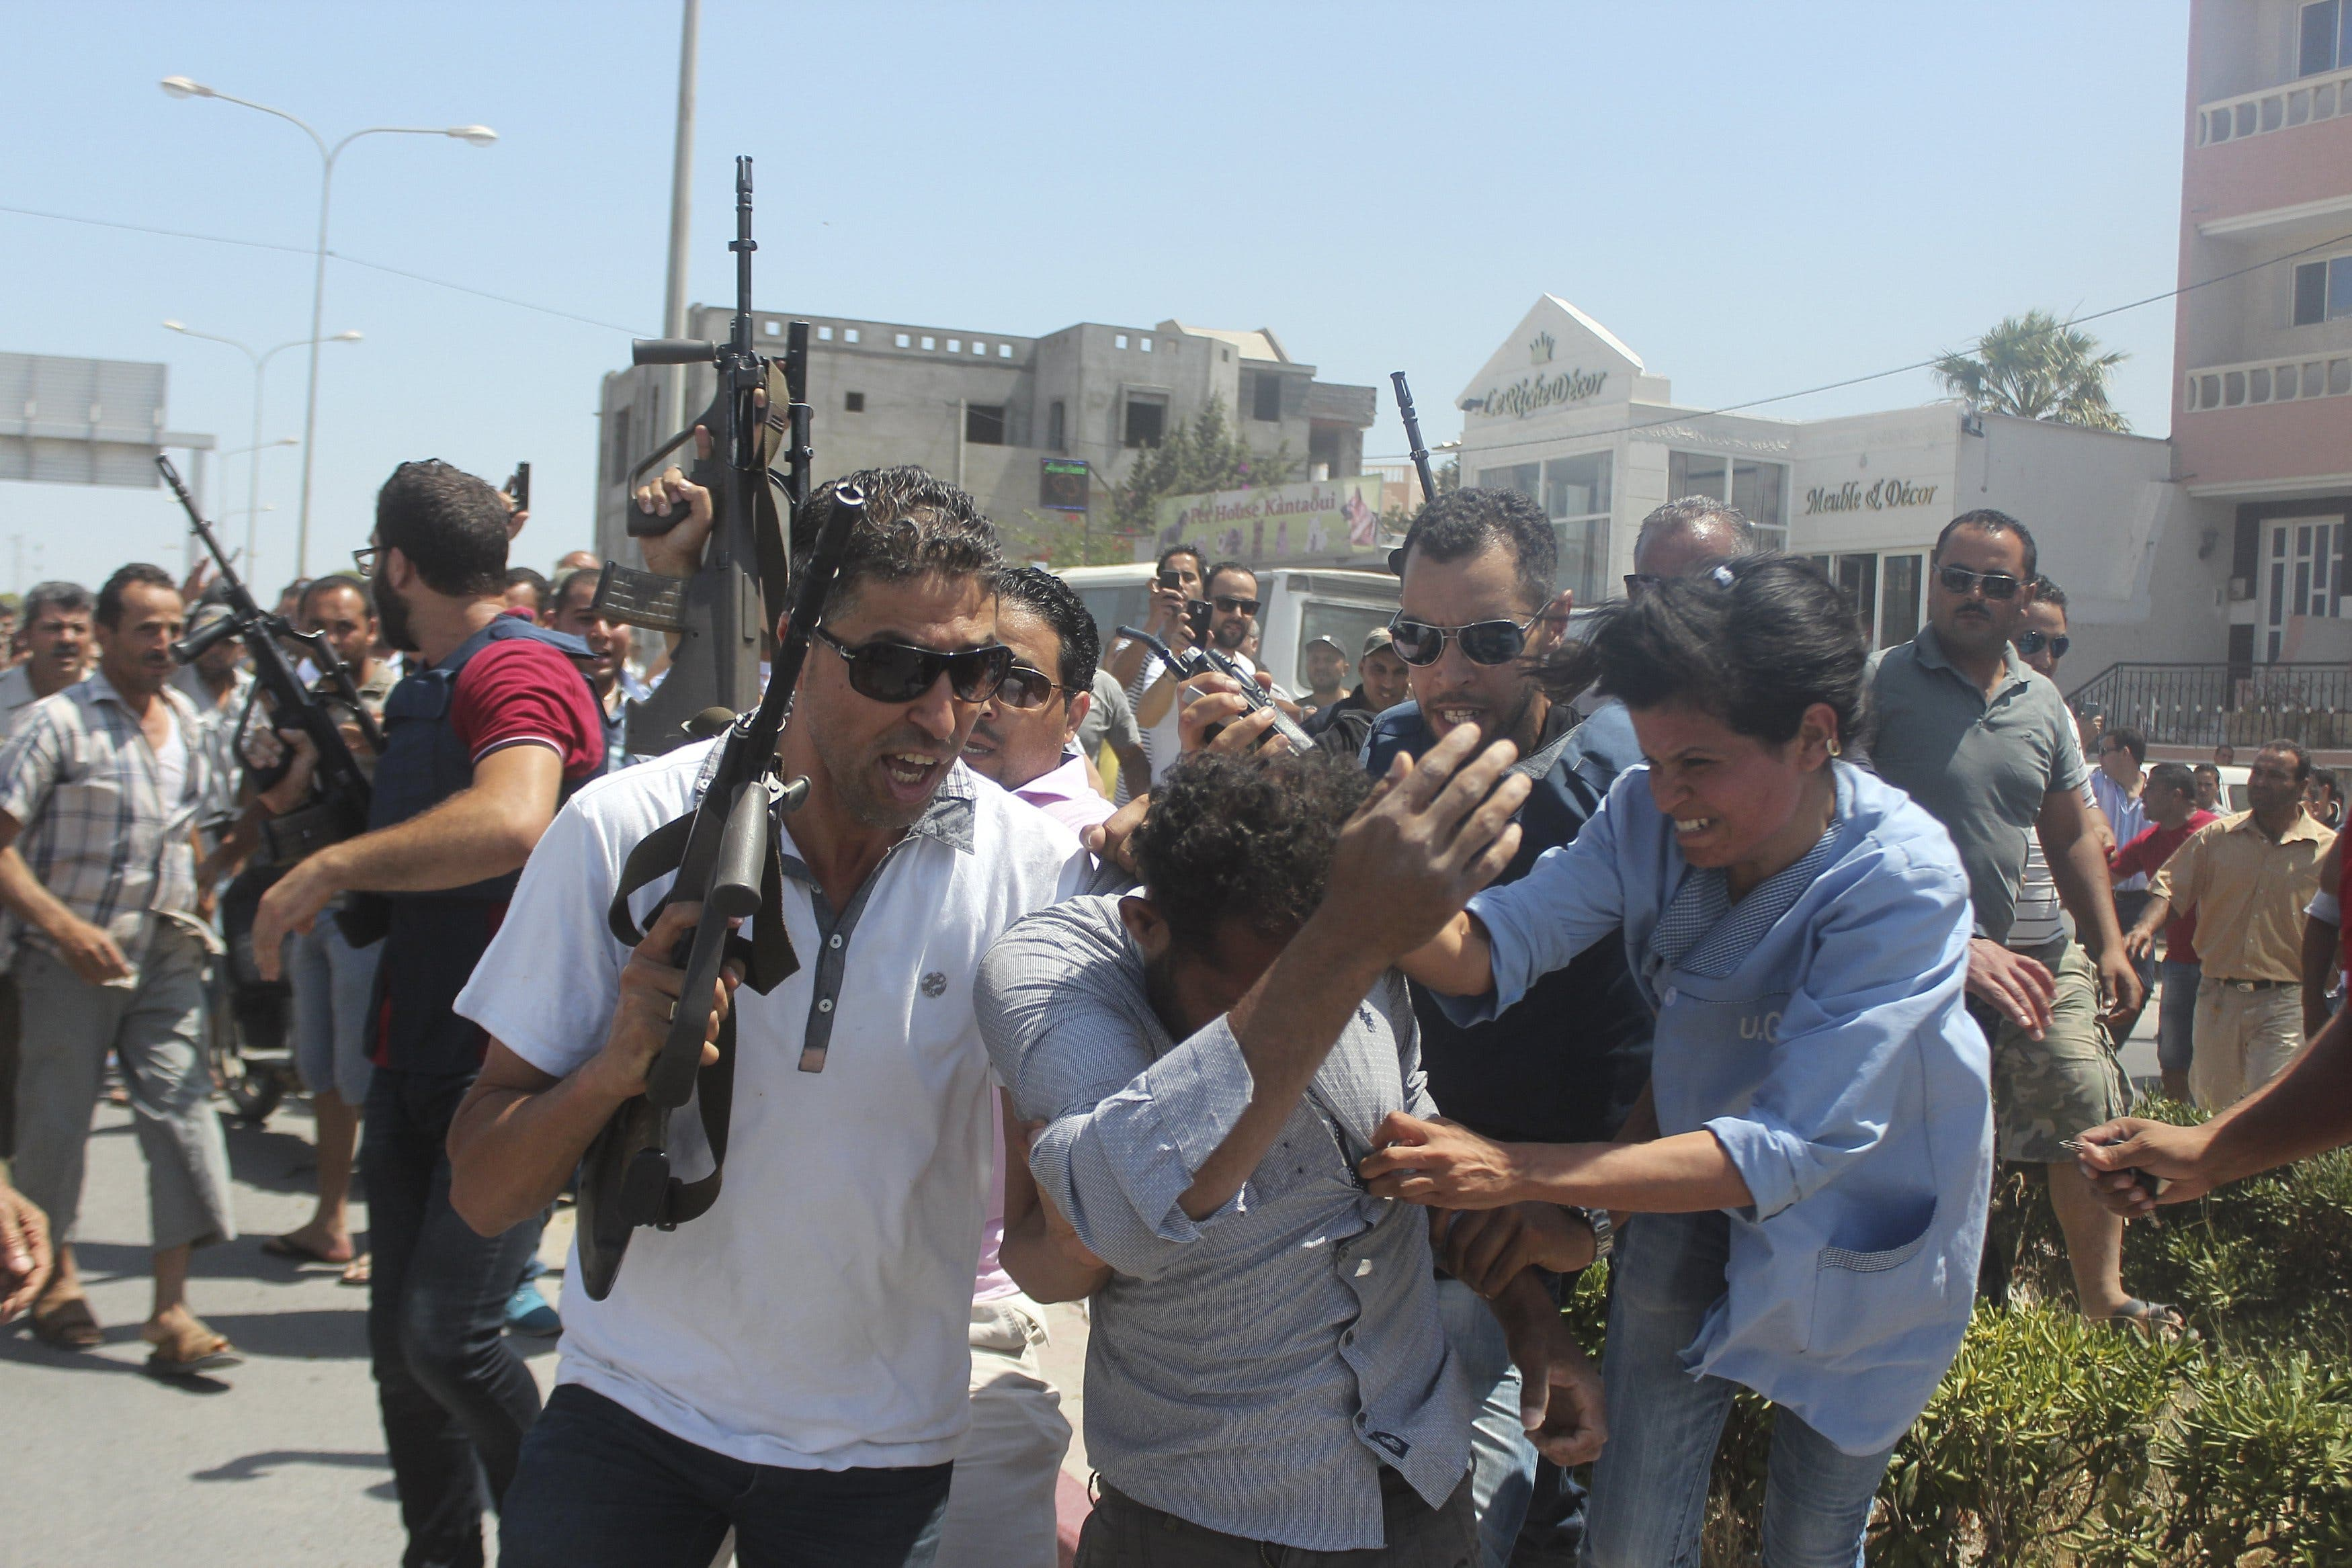 Police officers control the crowd (rear) while surrounding a man (front C) suspected to be involved in opening fire on a beachside hotel in Sousse, Tunisia, as a woman reacts(R), June 26, 2015. Reuters